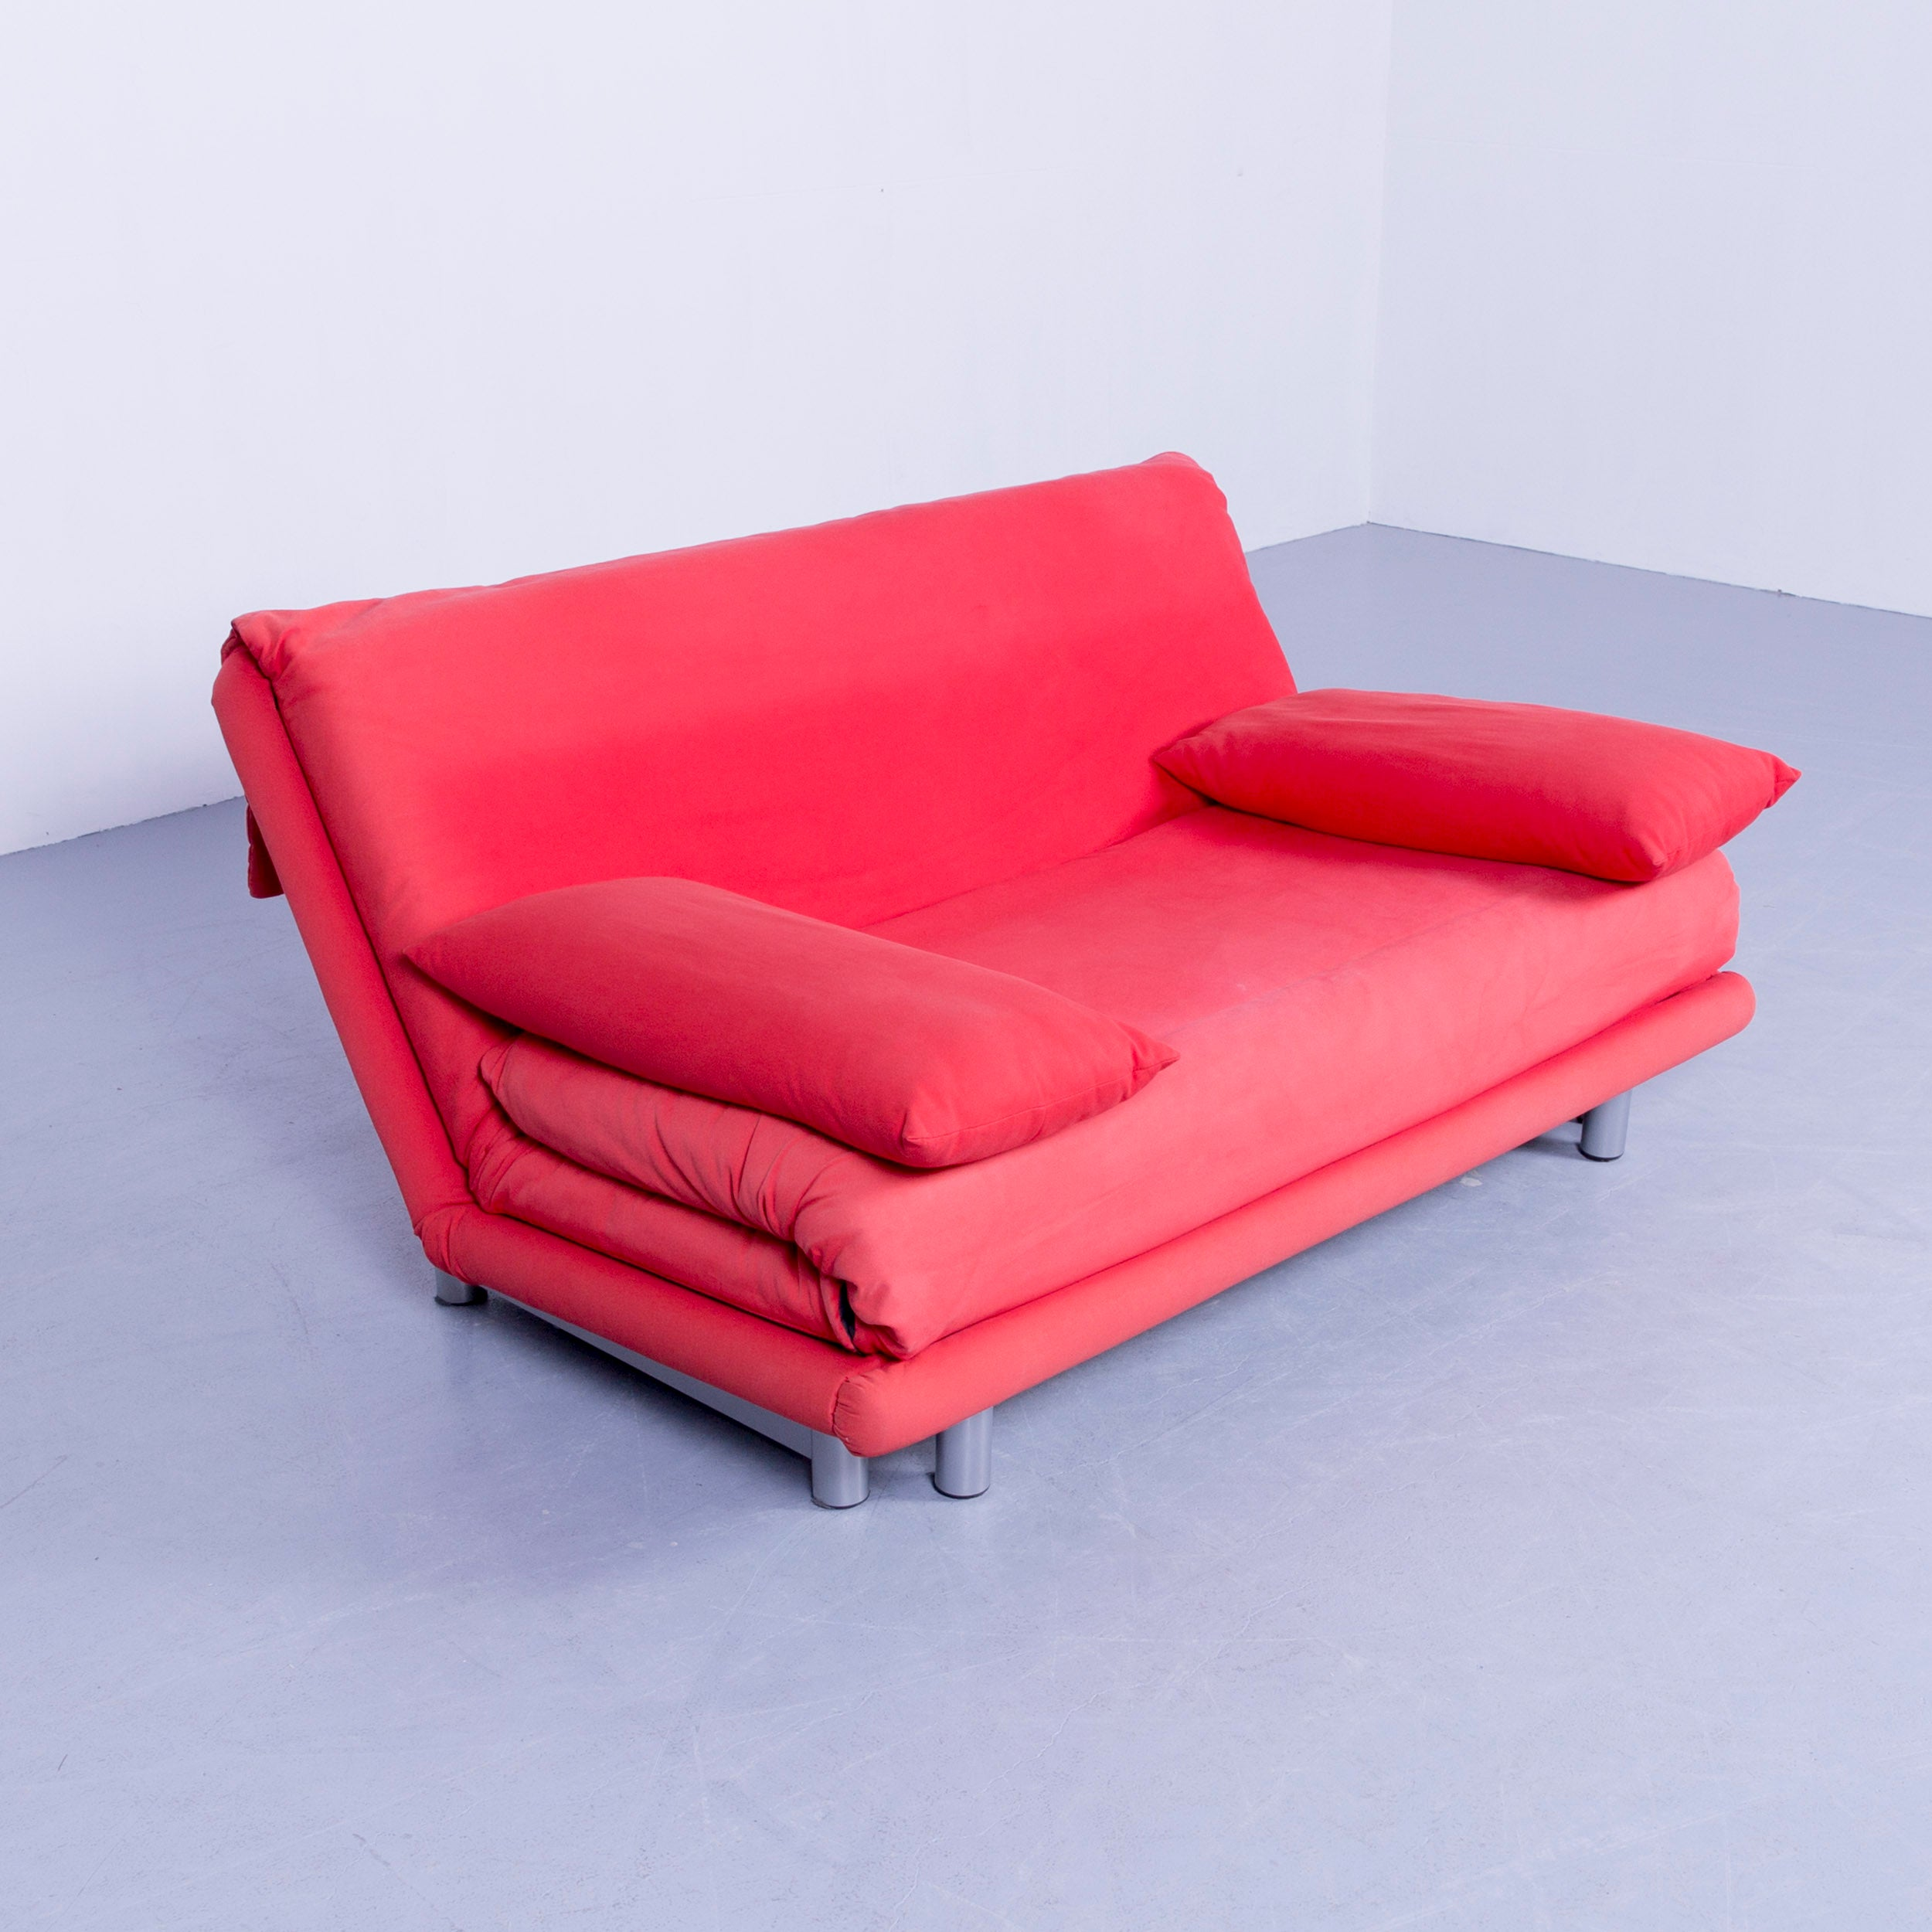 Original Ligne Roset Multy Cloth Sleeping Couch Red Two Seat